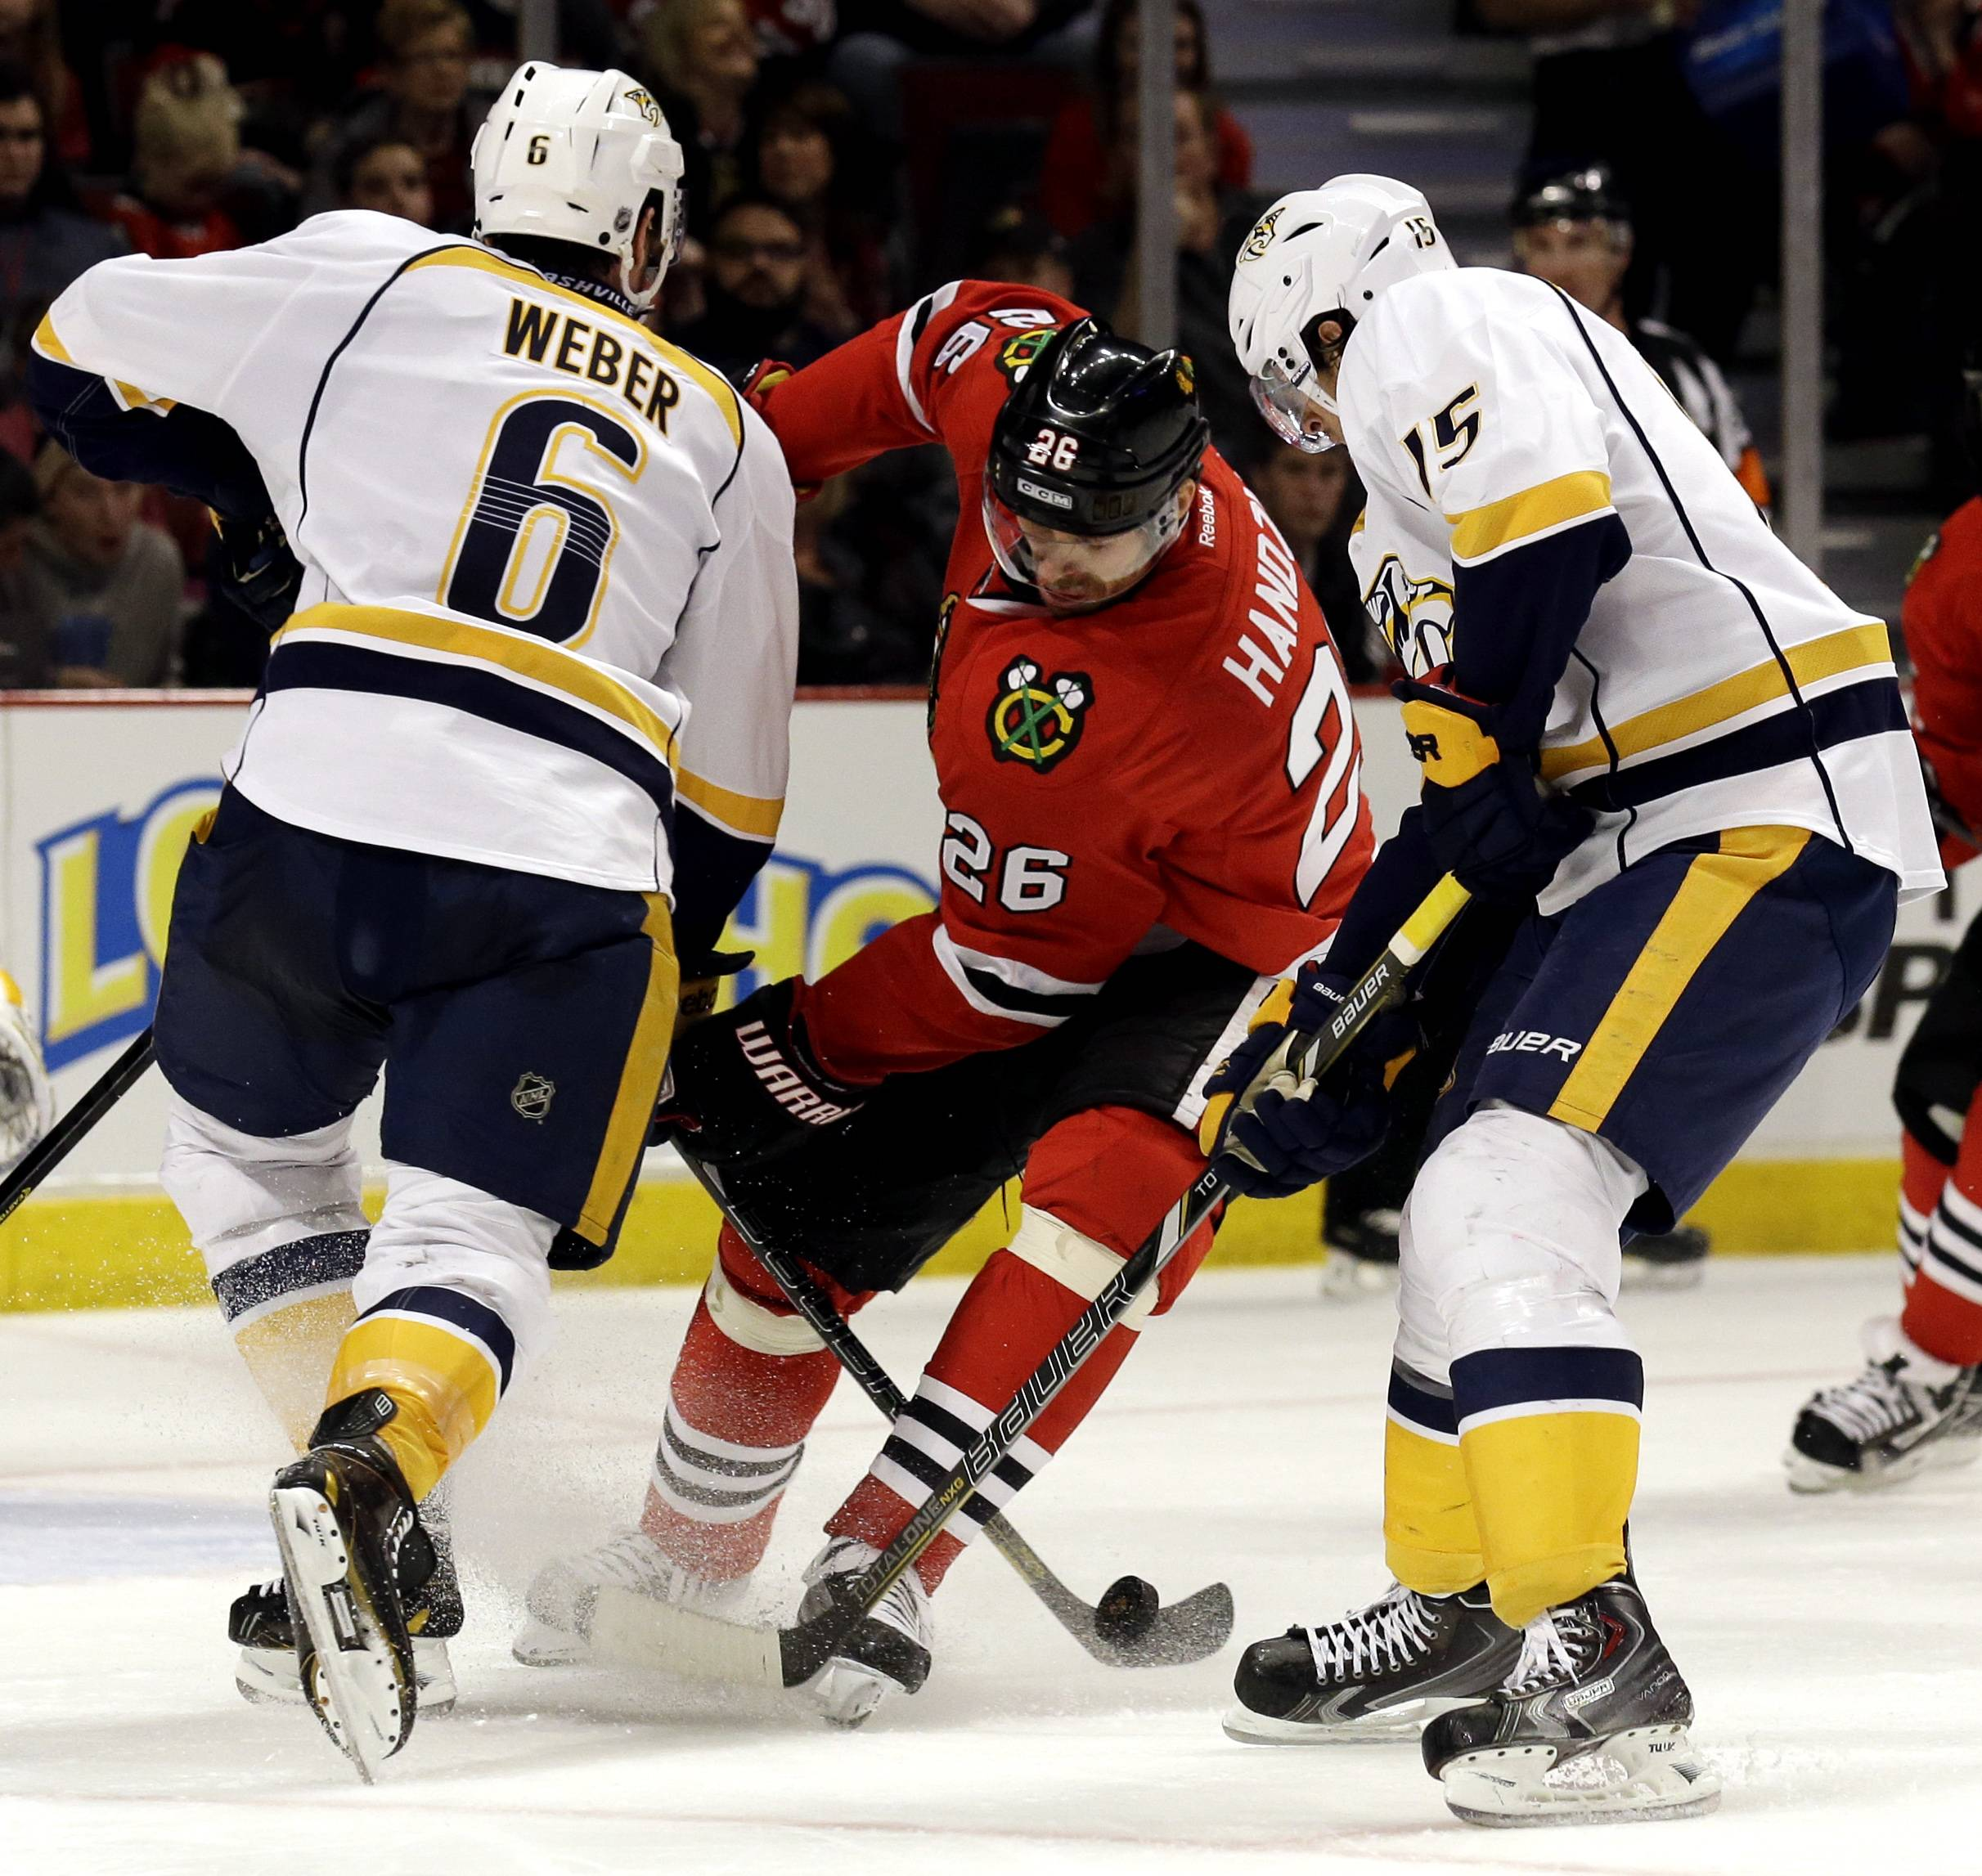 Chicago Blackhawks' Michal Handzus (26), center, battles for the puck against Nashville Predators' Shea Weber (6), left, and Craig Smith (15) during the second period of an NHL hockey game in Chicago, Sunday, March 23, 2014.